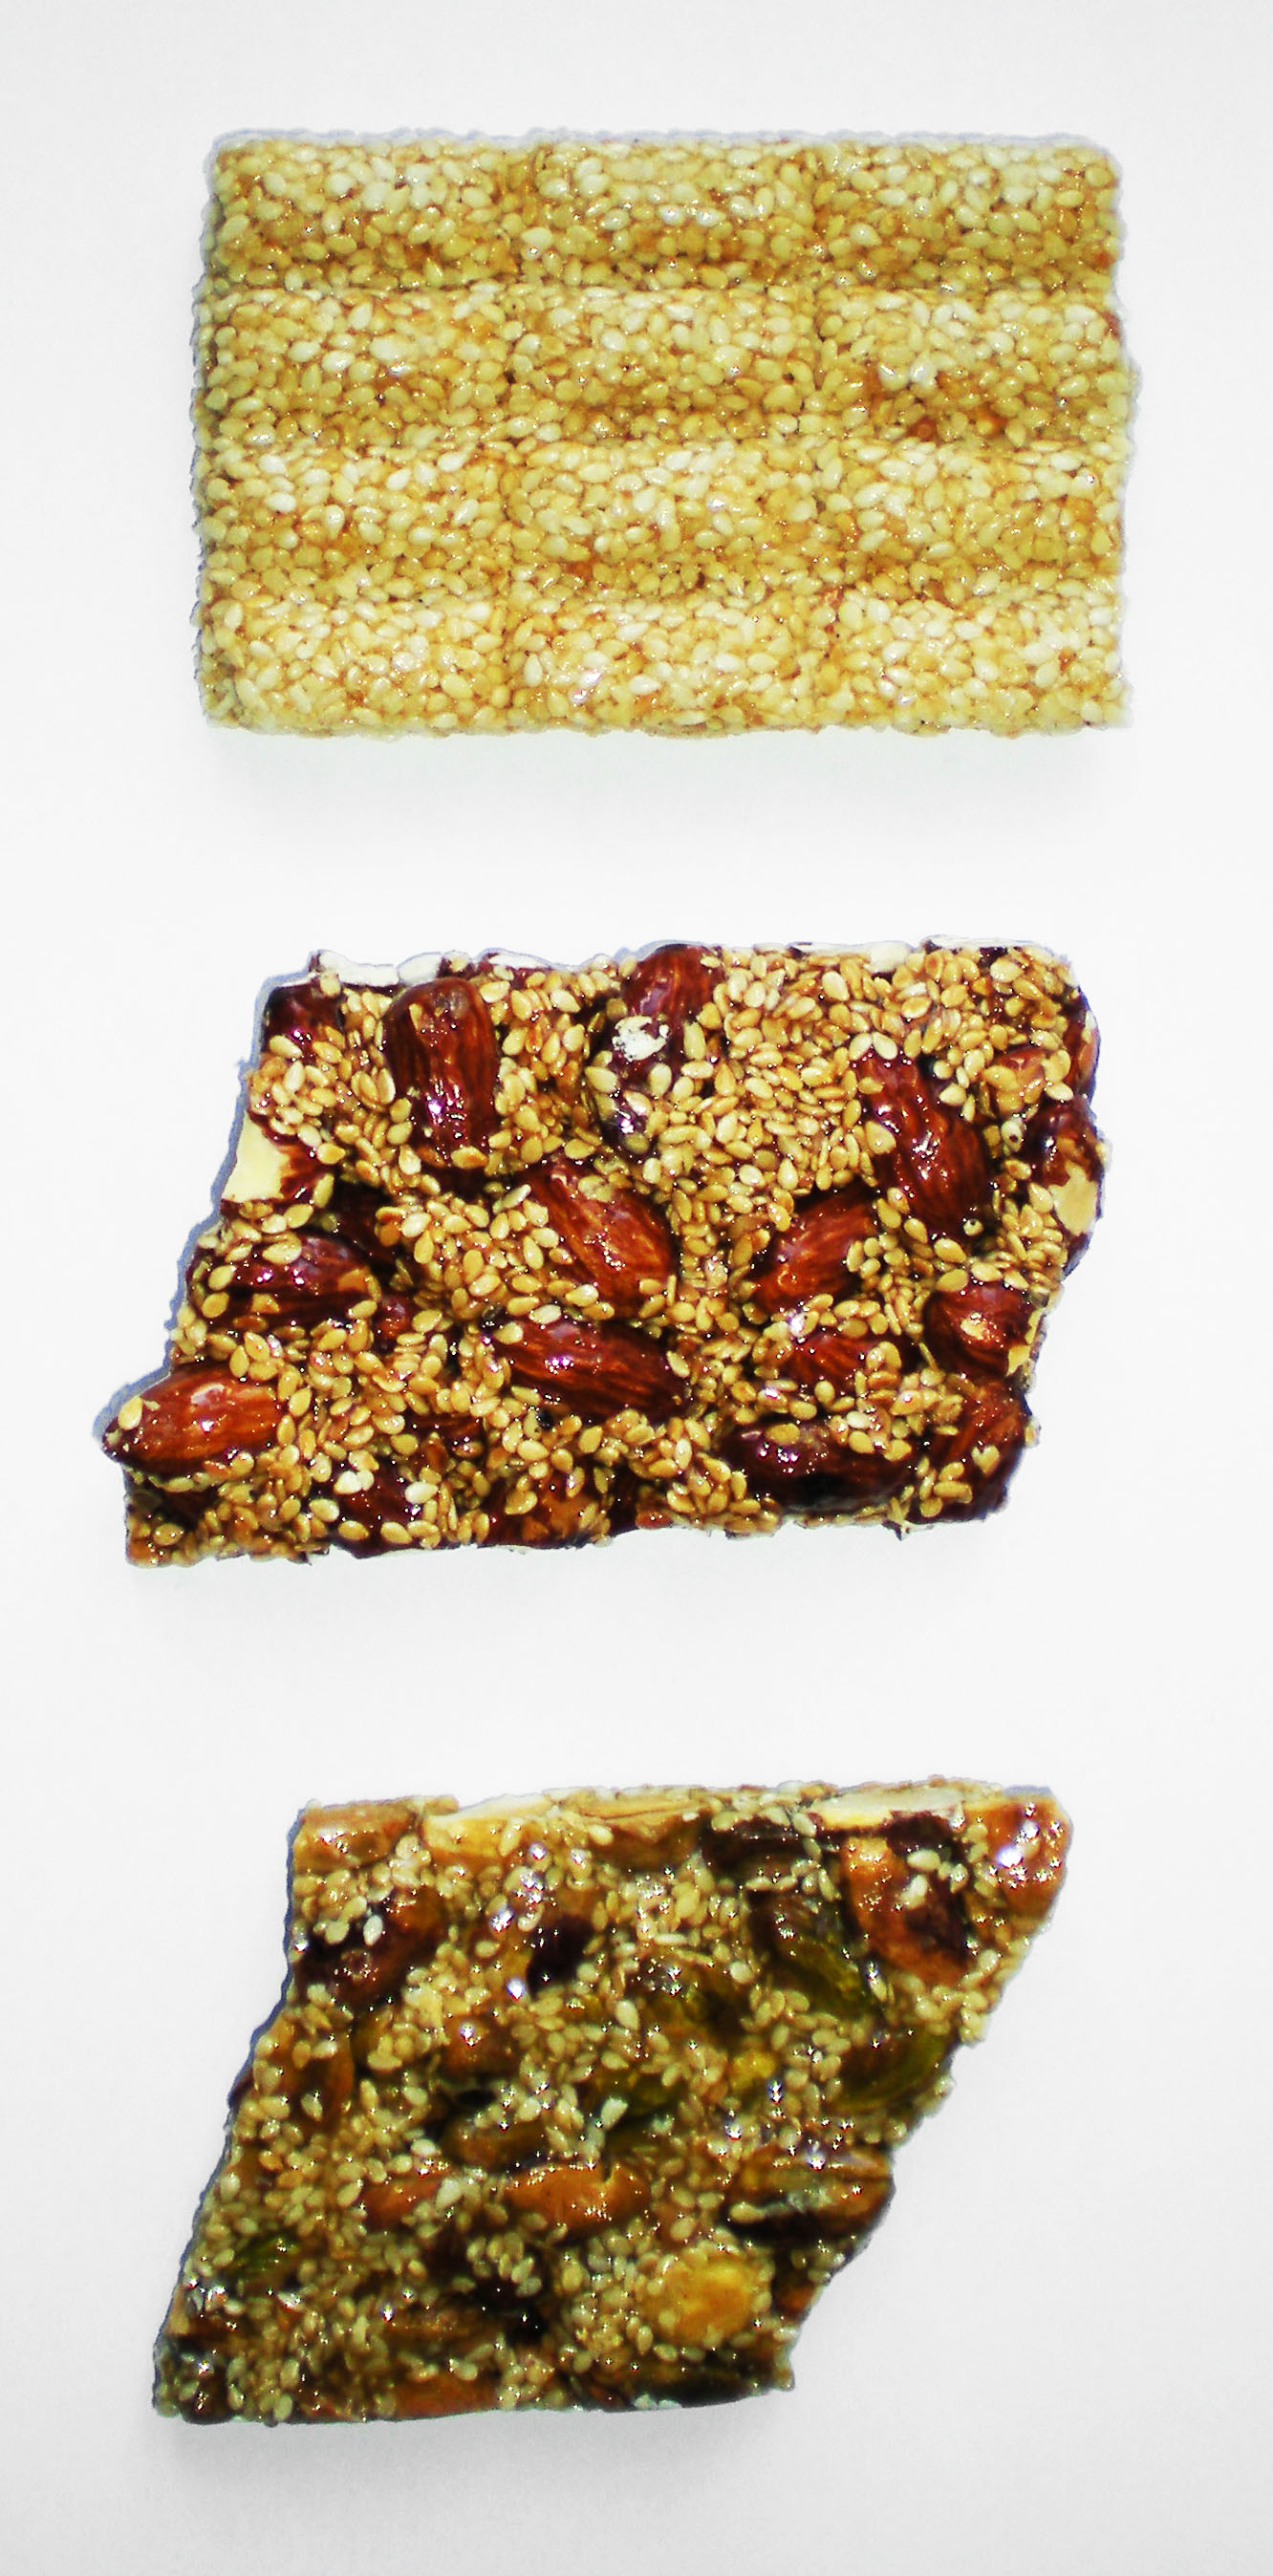 3-Ingredient Sesame Seed Crunch Candy (Gluten-Free) |Sesame Seed Candy With Cranberries